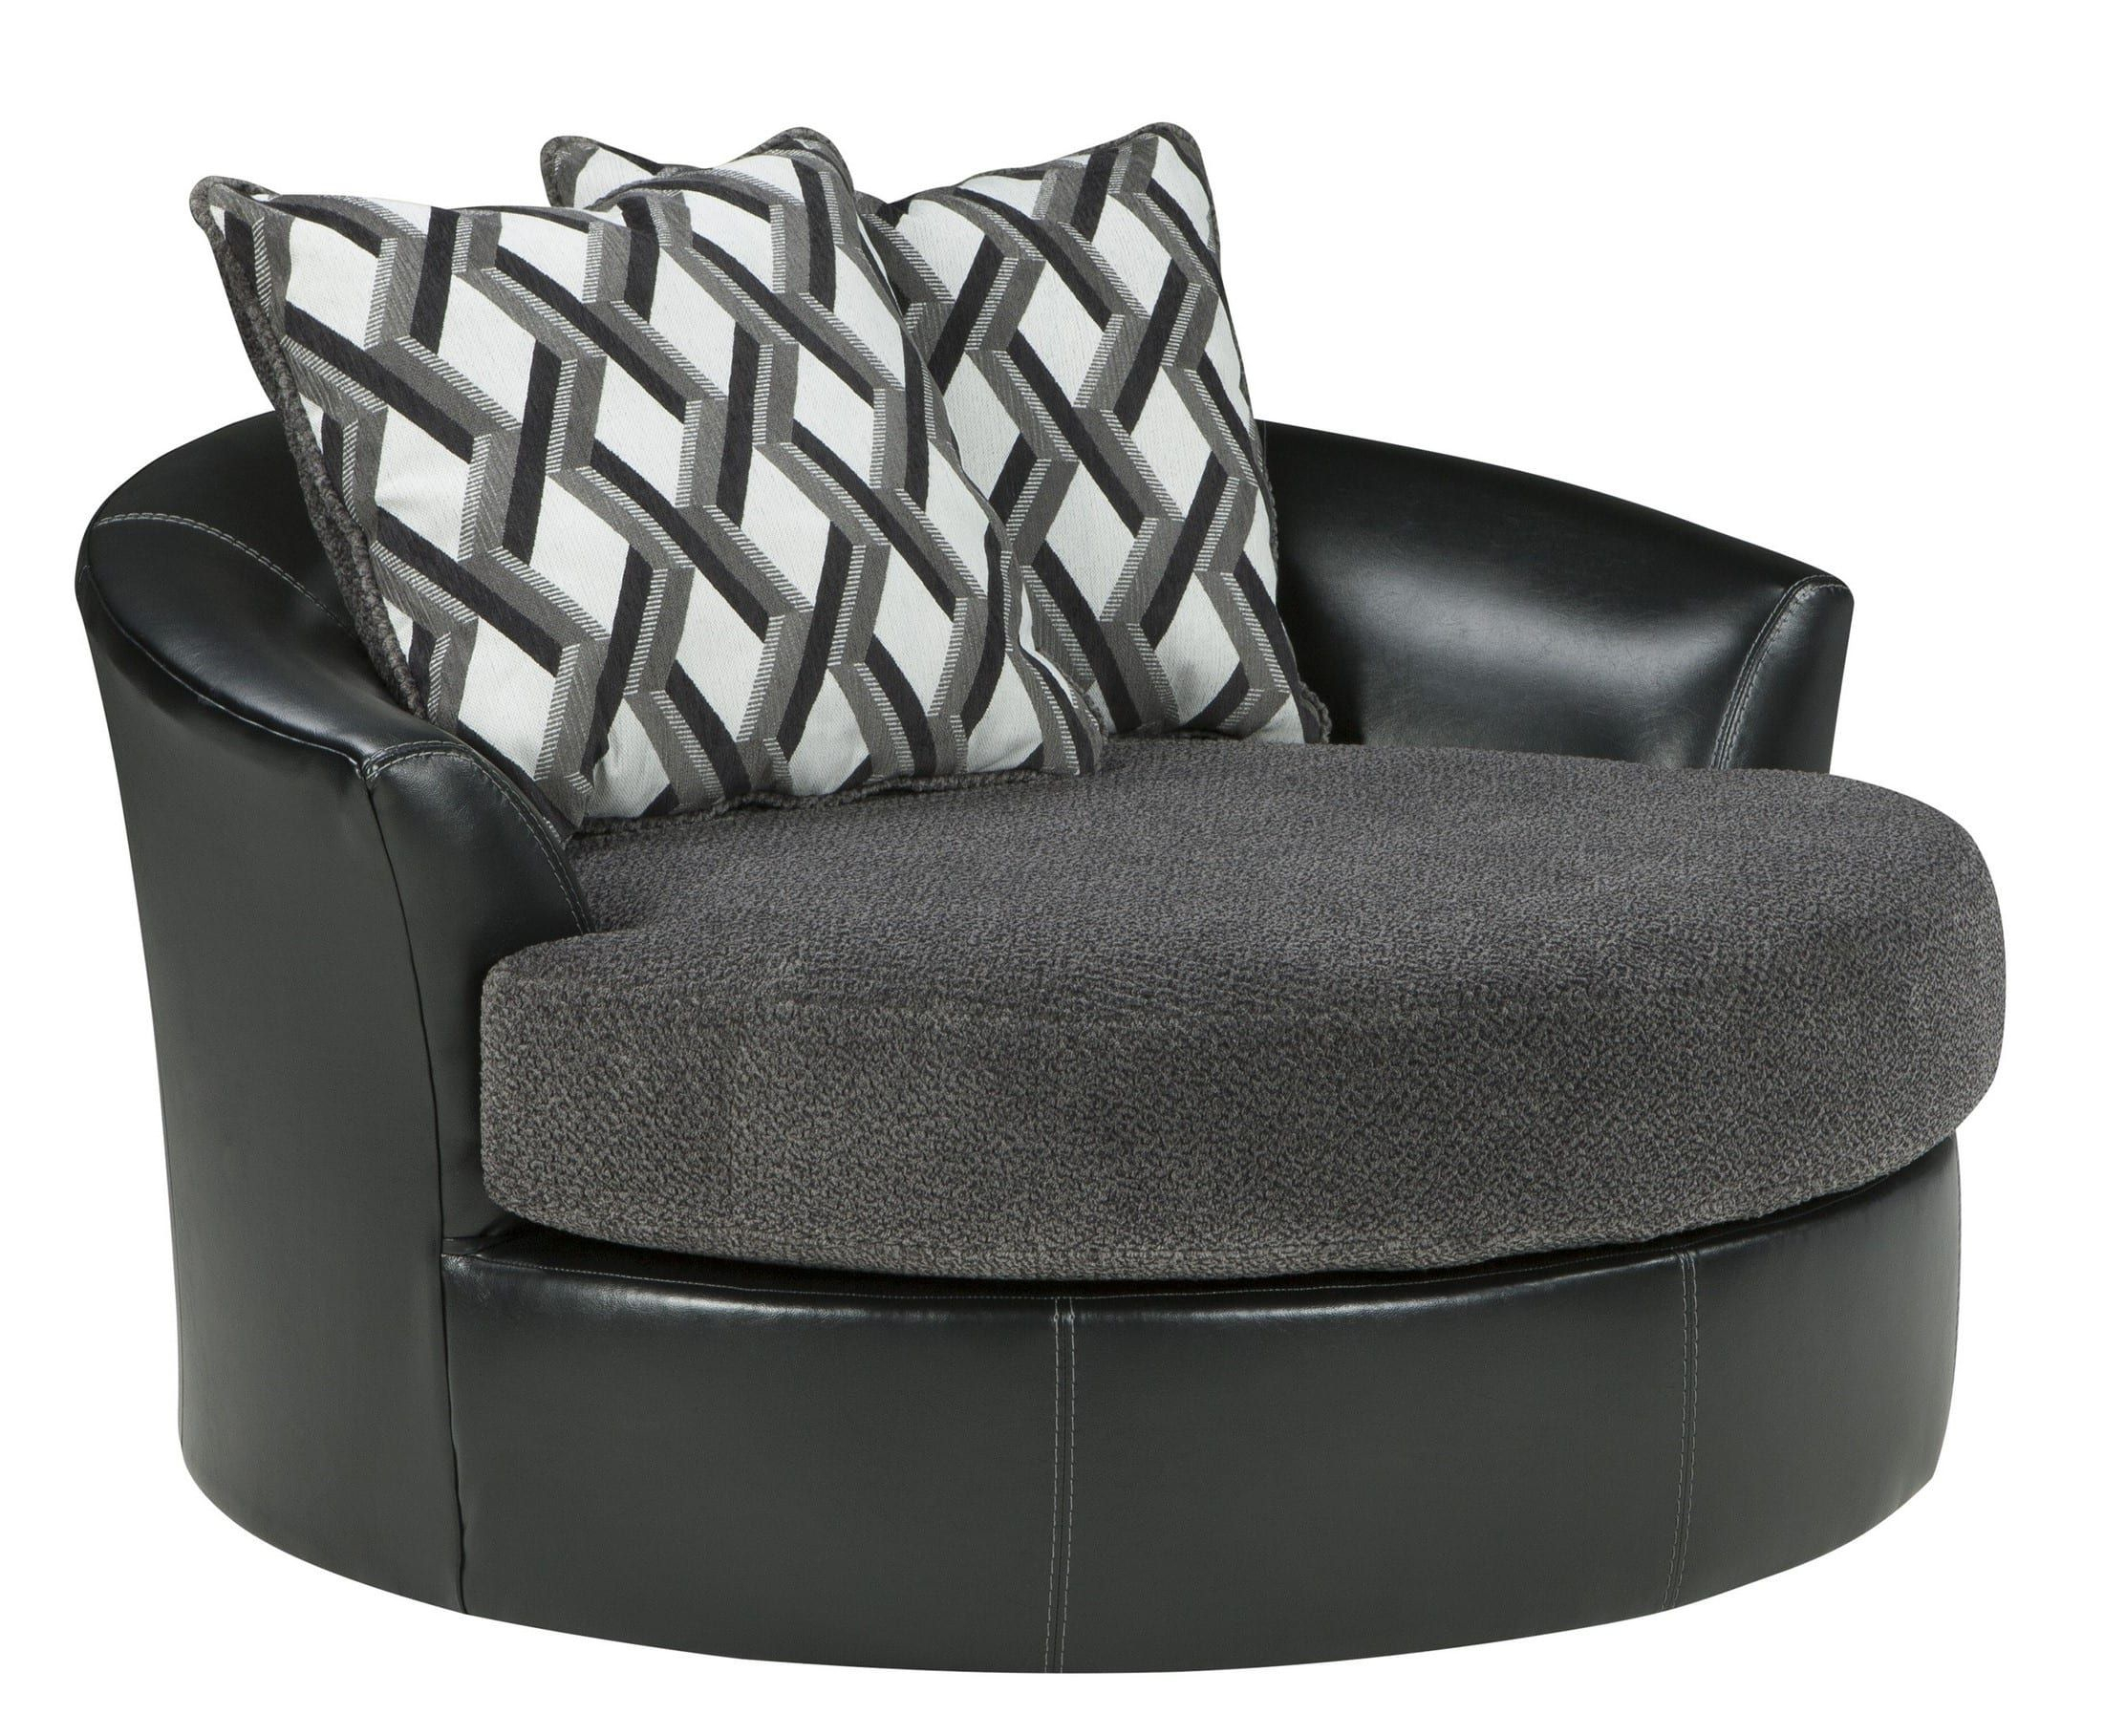 Kumasi Smoke Oversized Swivel Accent Chair | Interior Decorating In Mesa Foam Oversized Sofa Chairs (Photo 18 of 25)